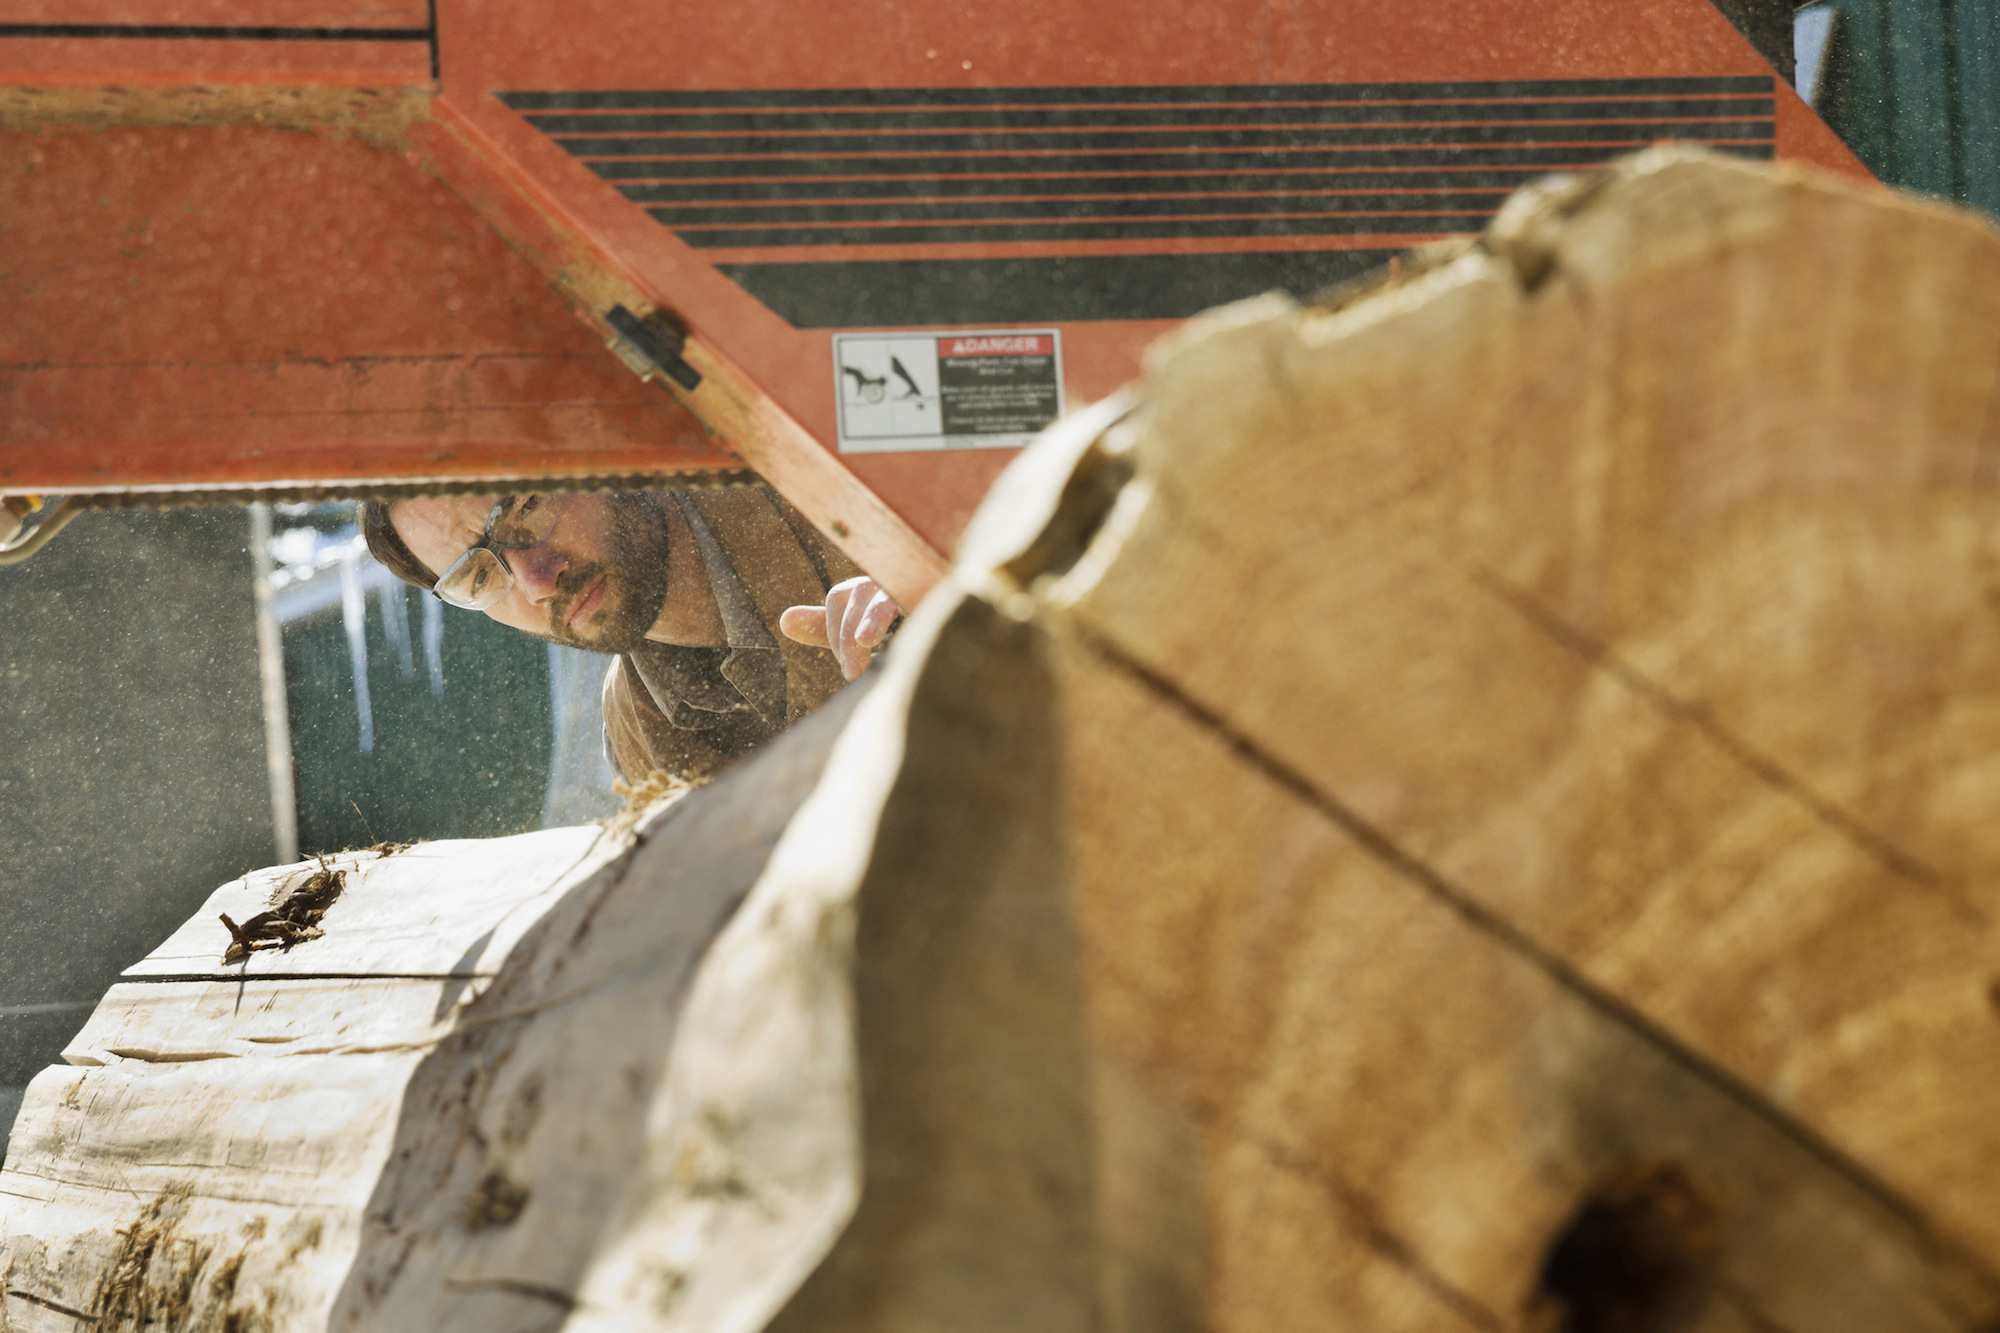 how to get the most out of your band saw